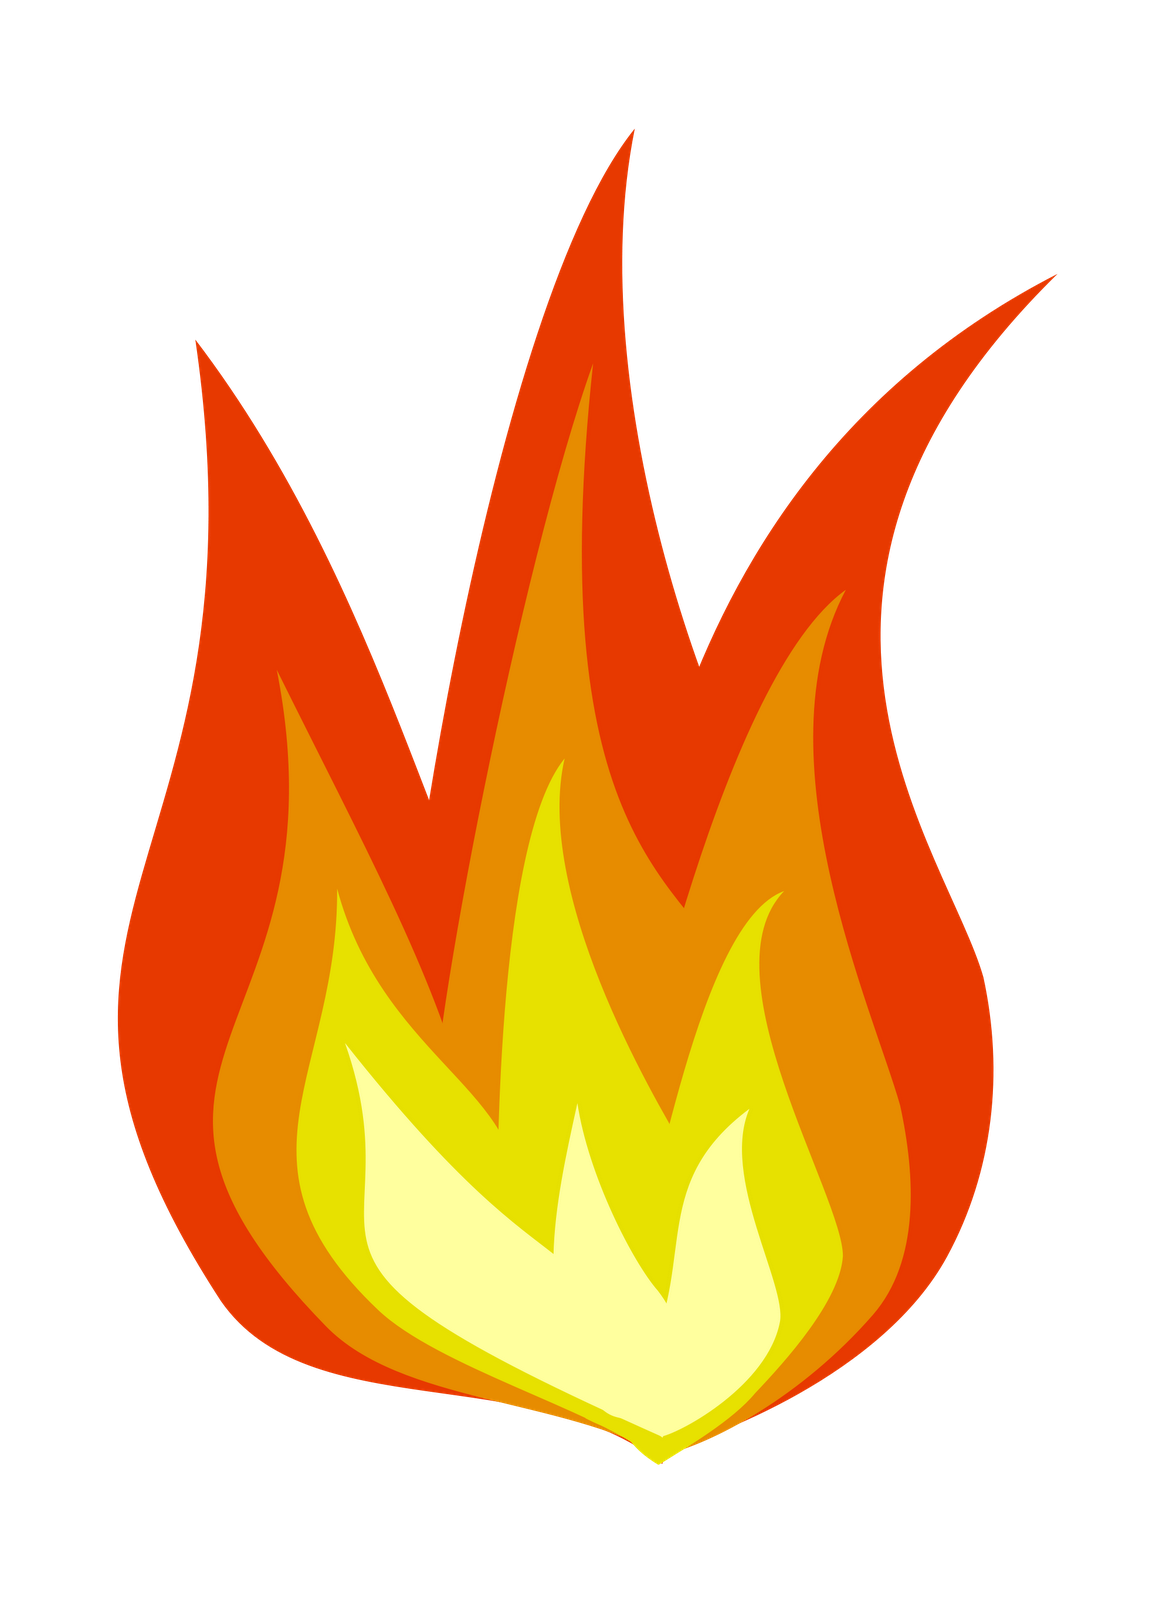 Flames clipart holy ghost fire Prayer Of holy is prayer